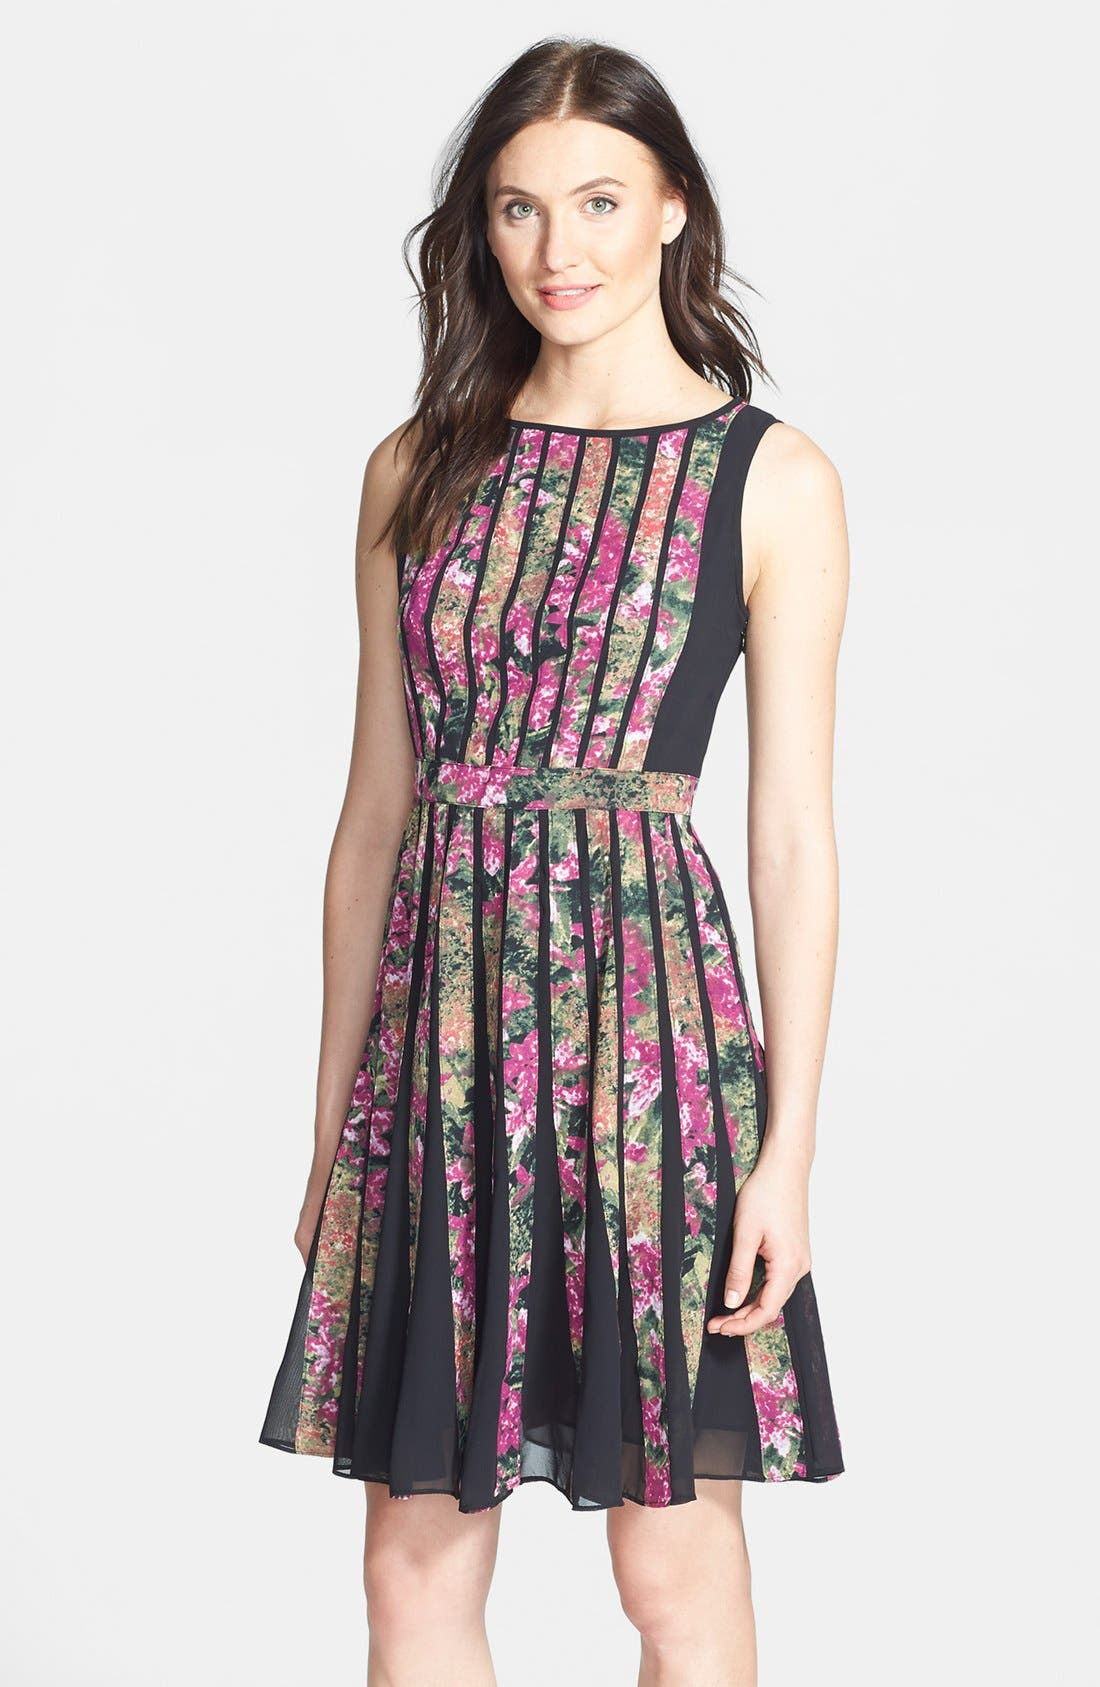 Main Image - Adrianna Papell Spliced Floral Print Fit & Flare Dress